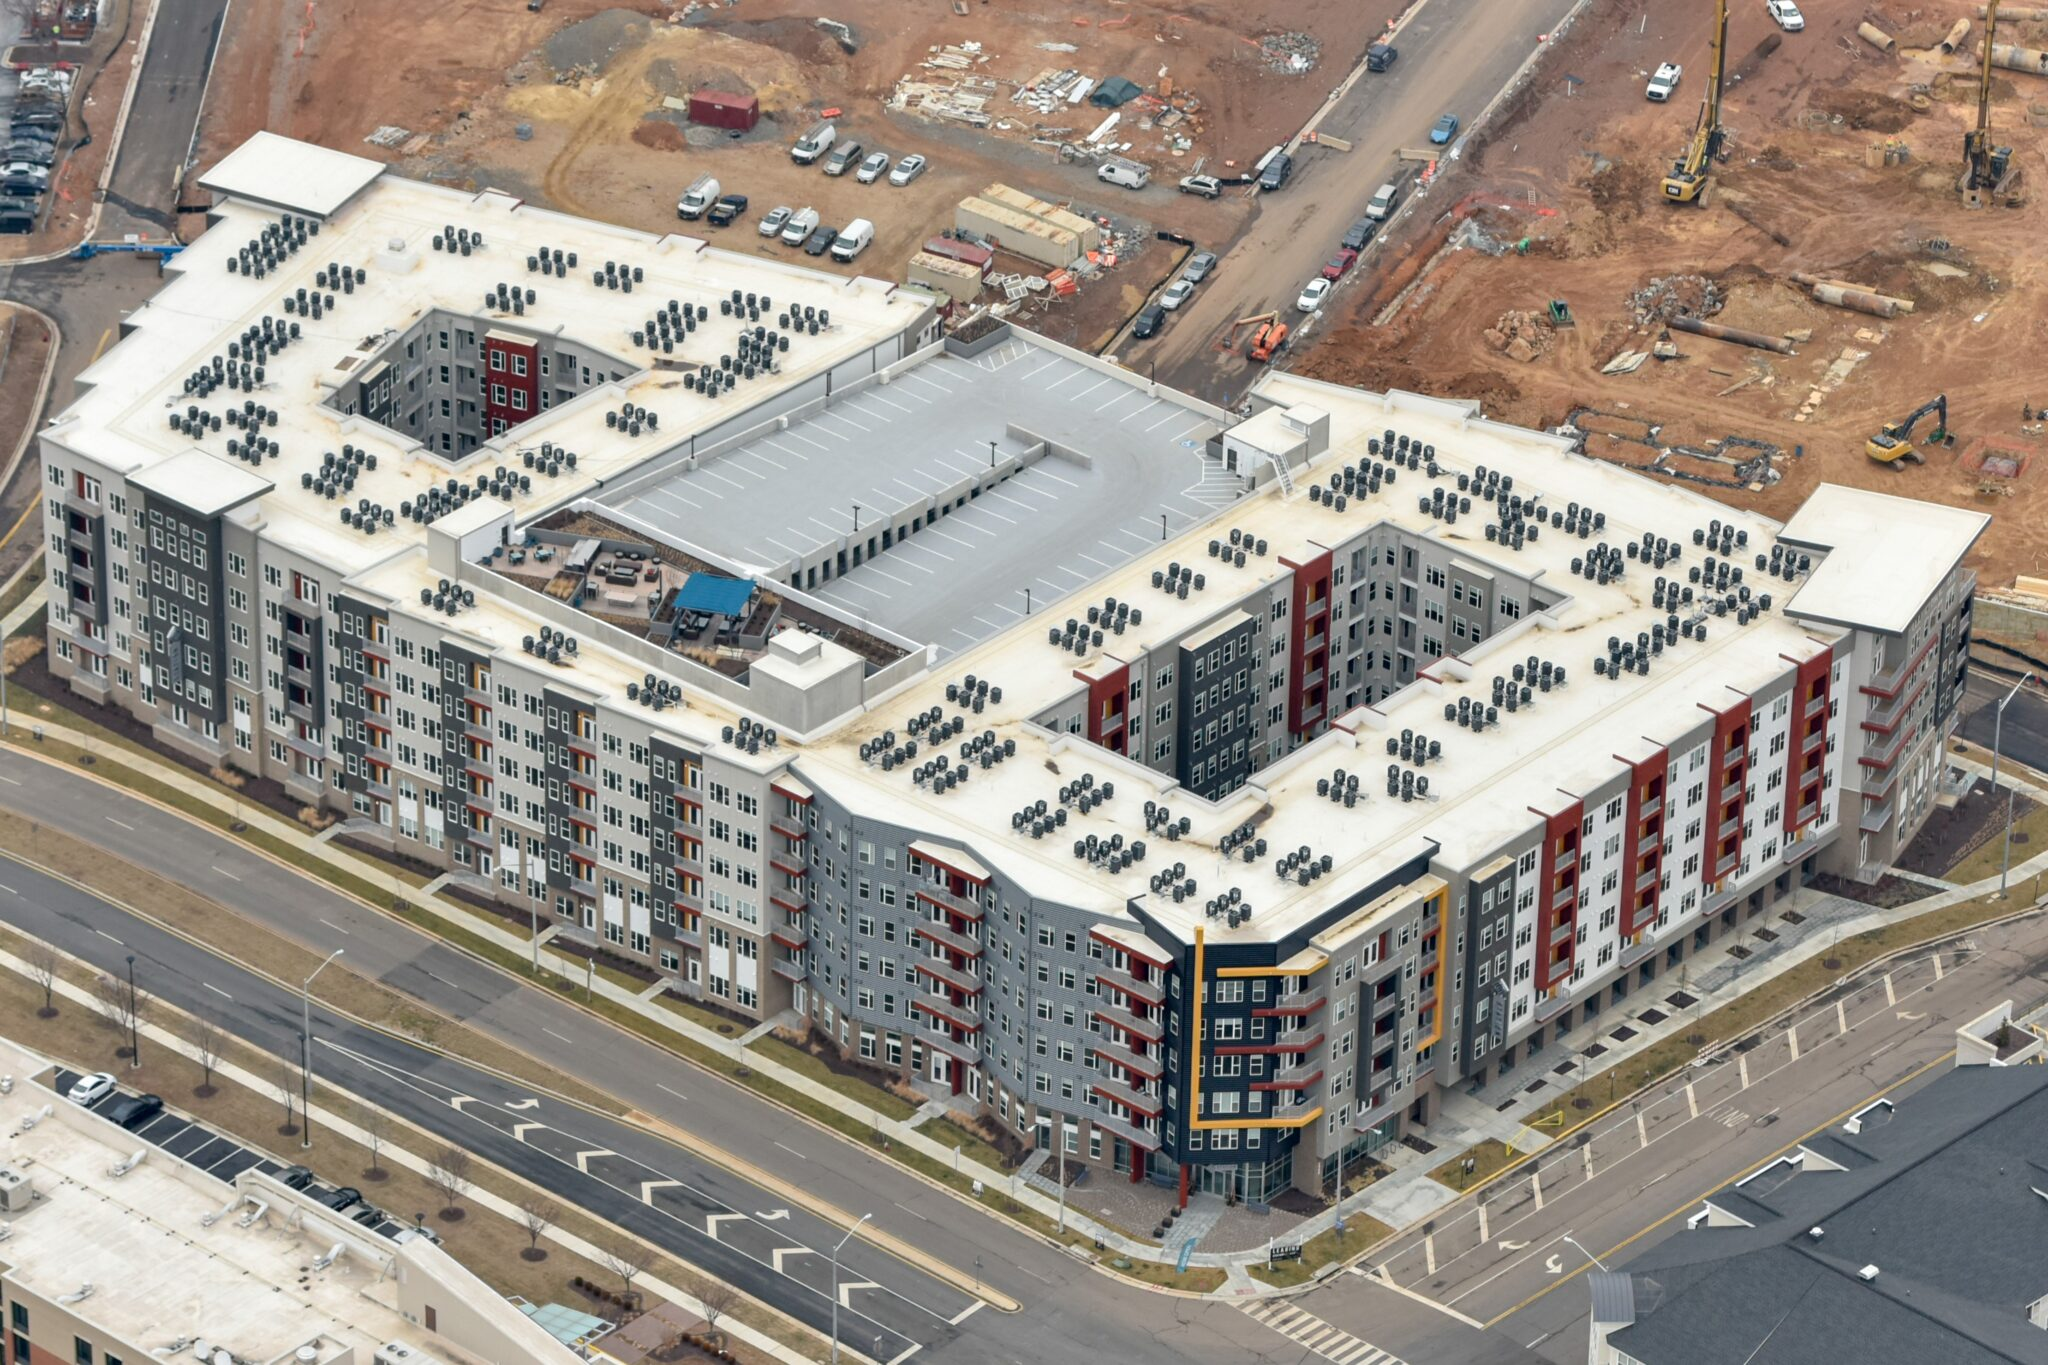 Dulles Station Parcel apartment complex in Herndon, Virginia as seen from above.